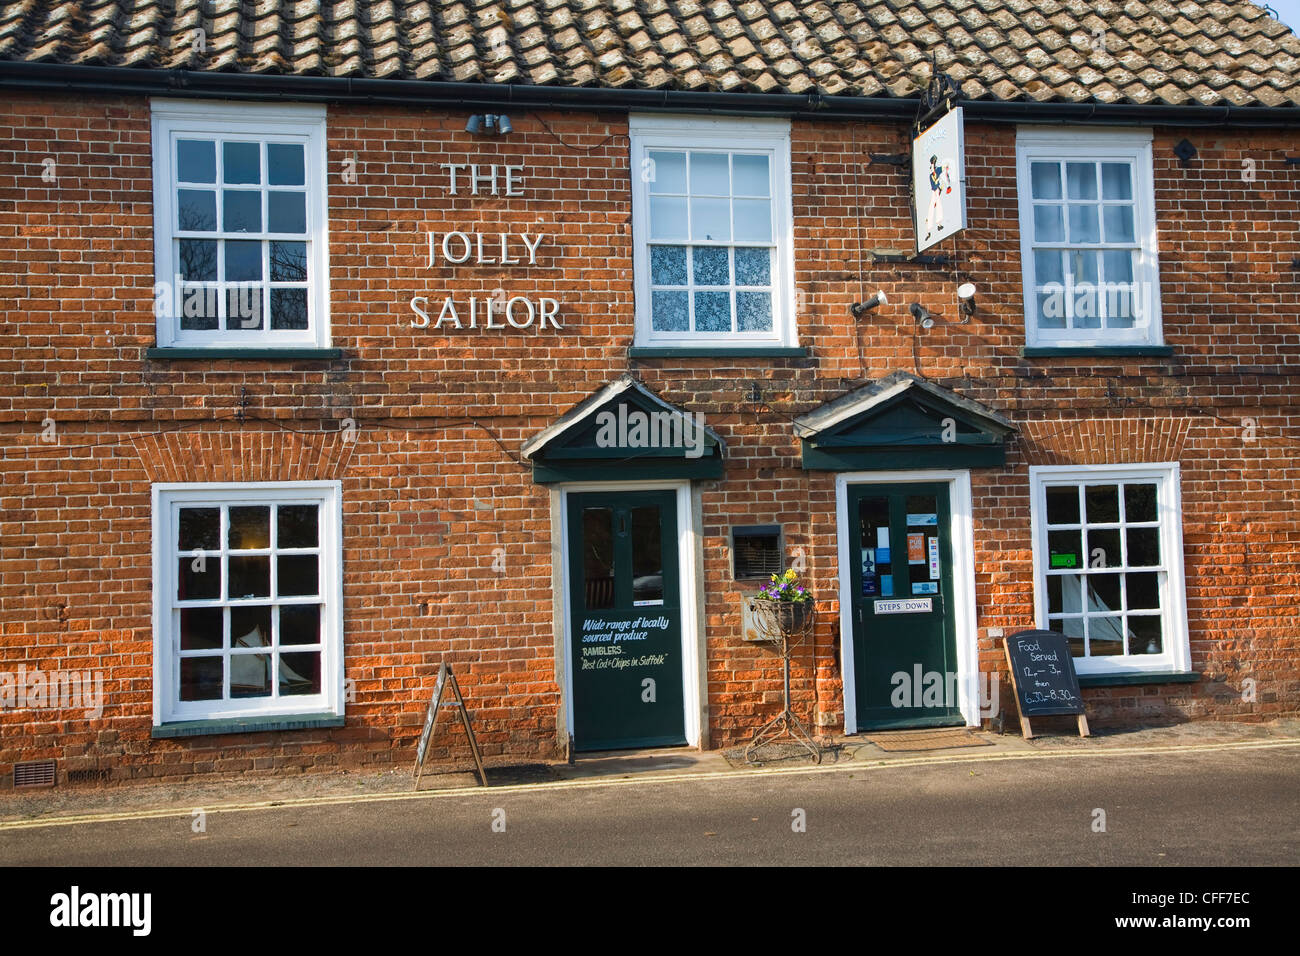 El pub Jolly Sailor Orford Suffolk Inglaterra Imagen De Stock